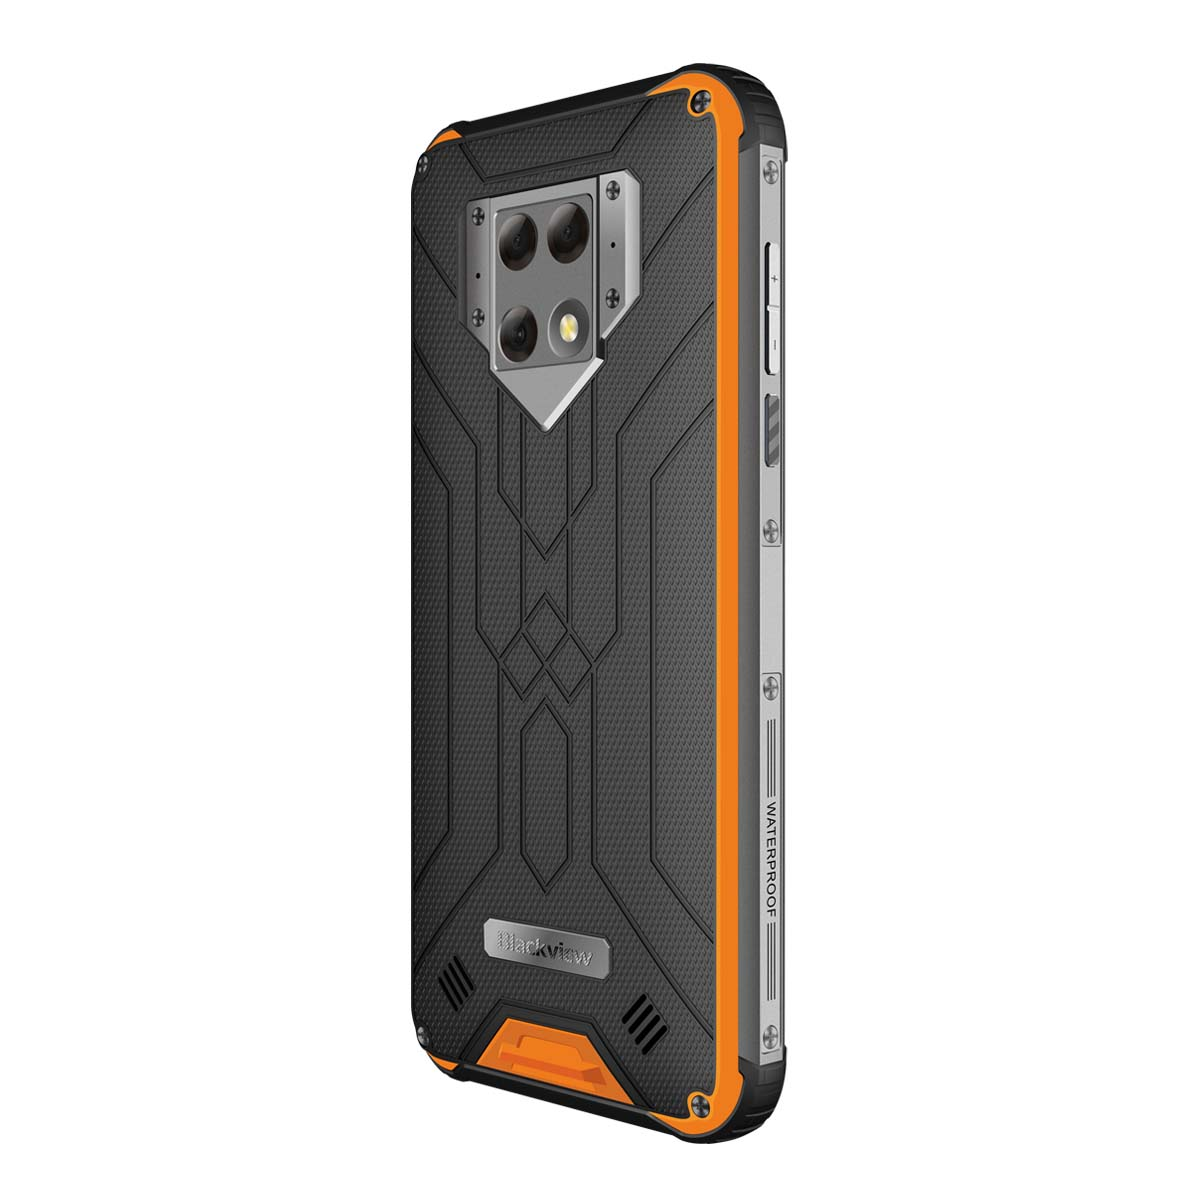 Blackview BV9800 Pro Thermal imaging Rugged Smartphone 48MP Waterproof P70 Octa Core Android 9.0 6GB+128GB Wireless charge Rugged Phone